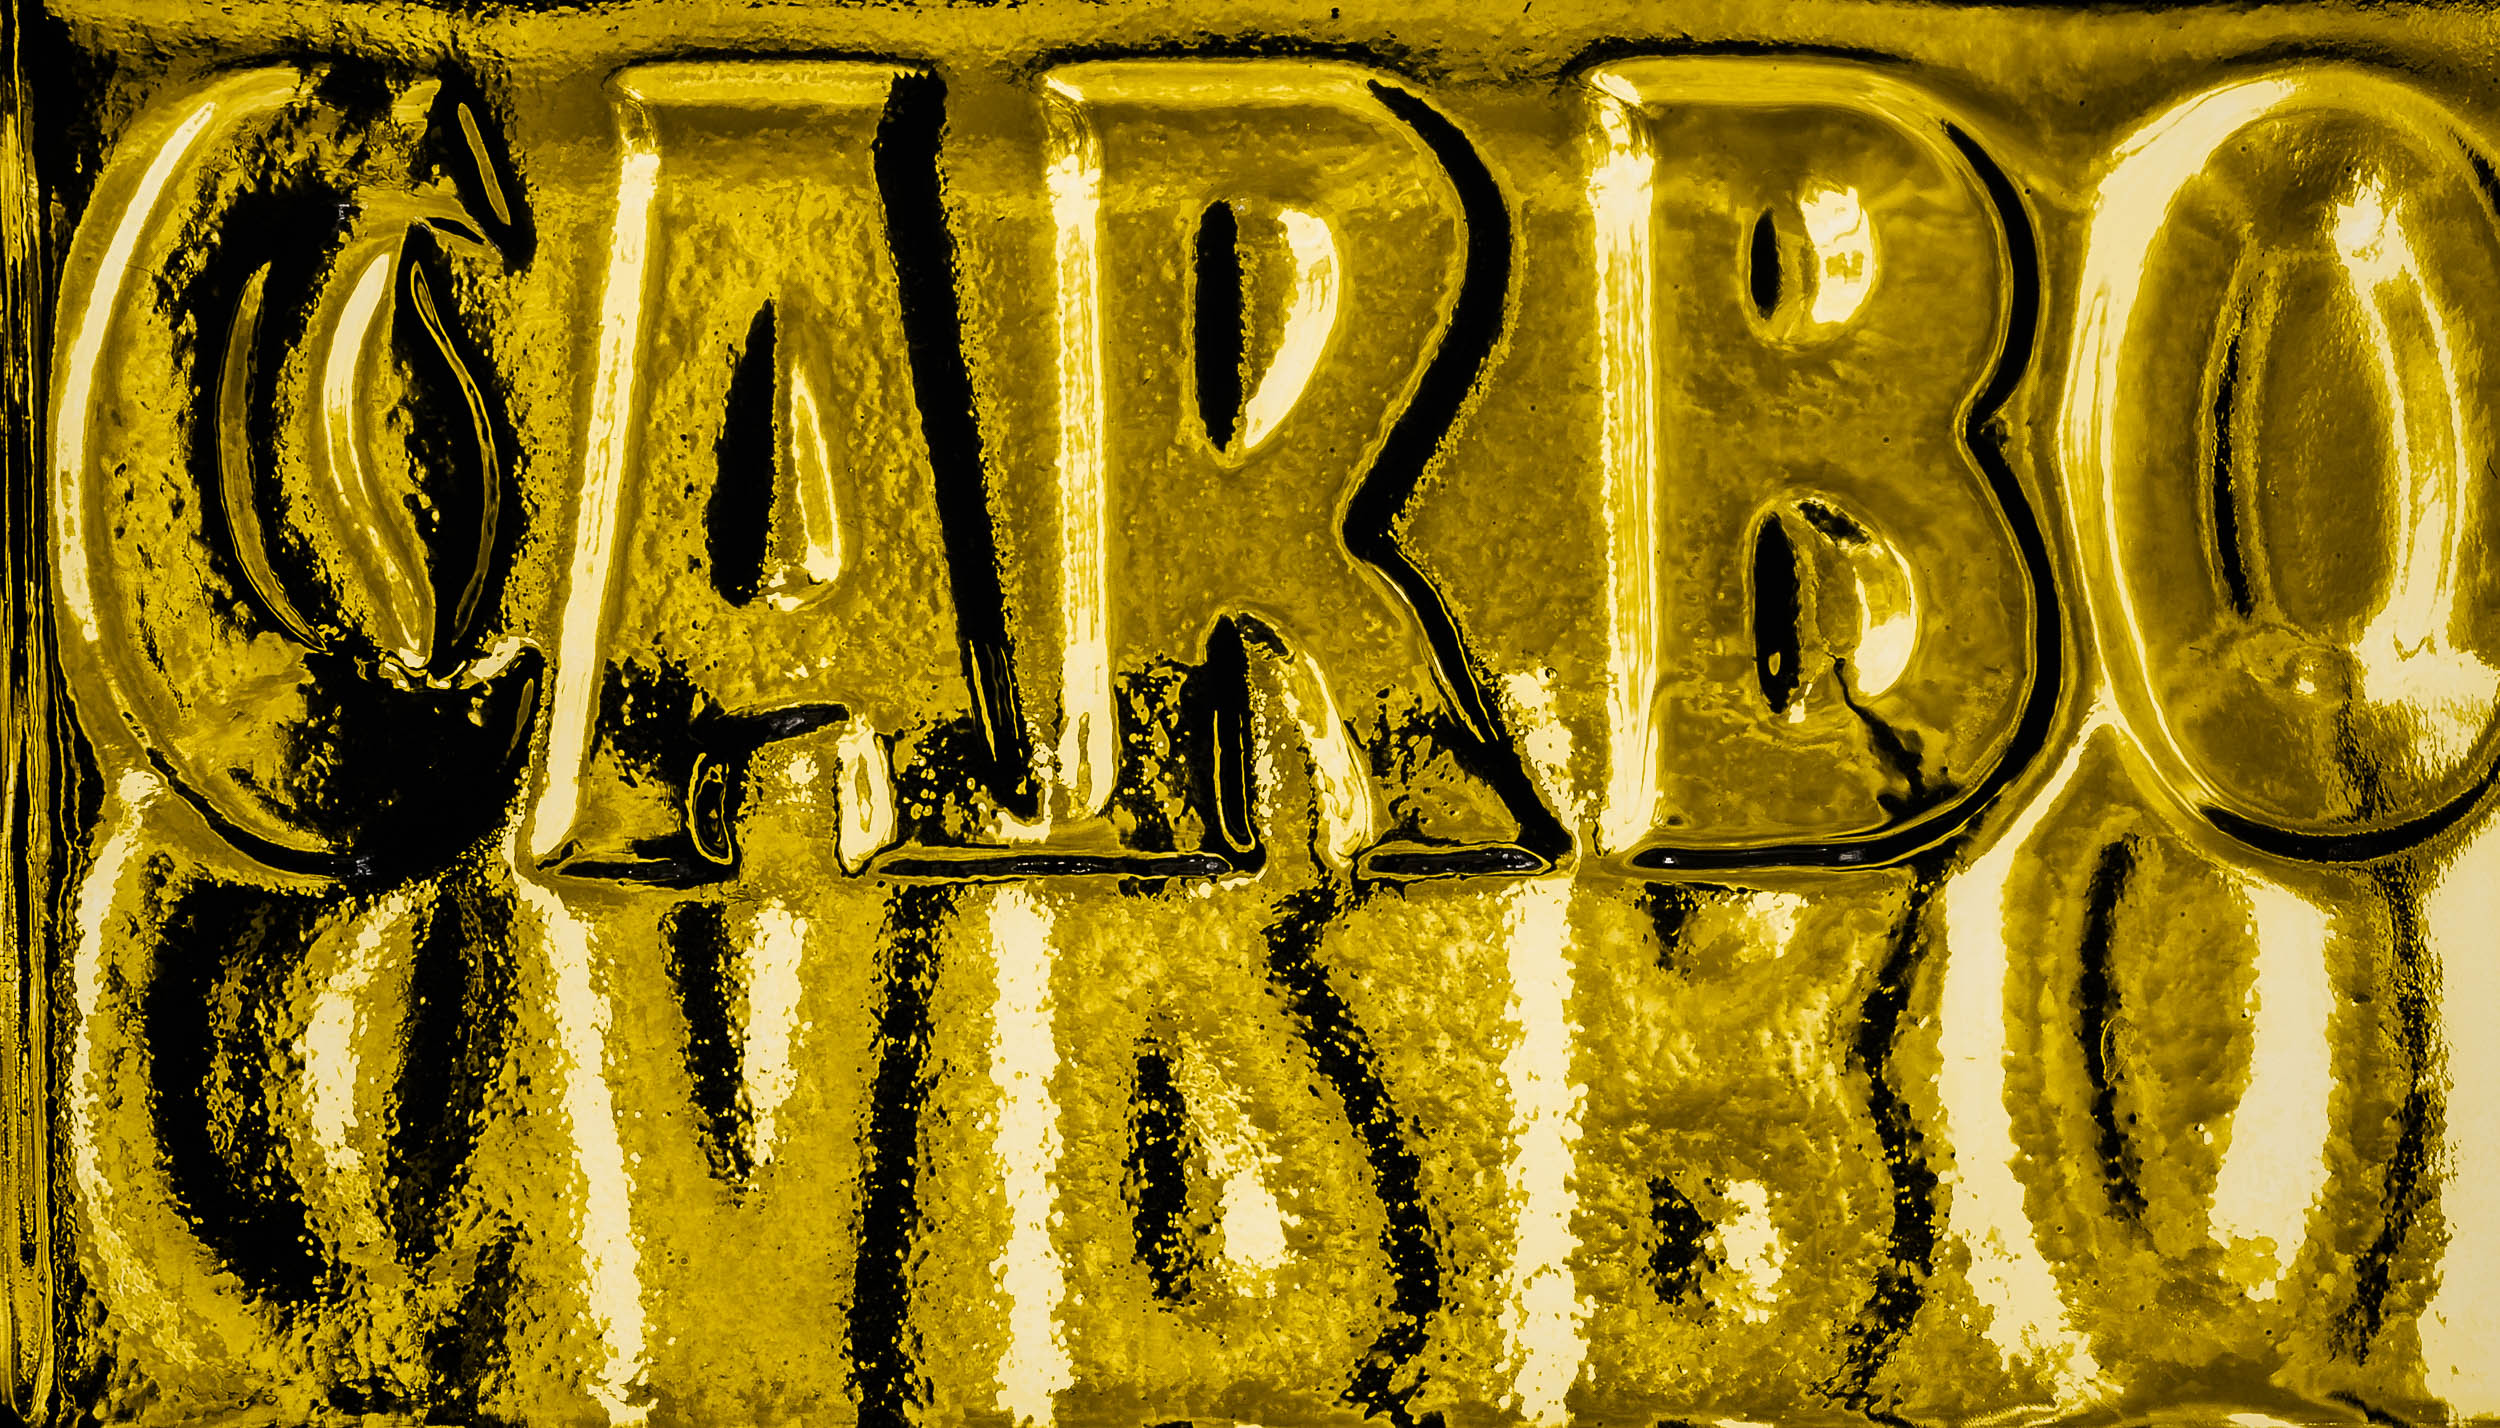 Bold letters, bathed in gold . A close up image where  abstraction  has been used to produce a  visually dynamic result .